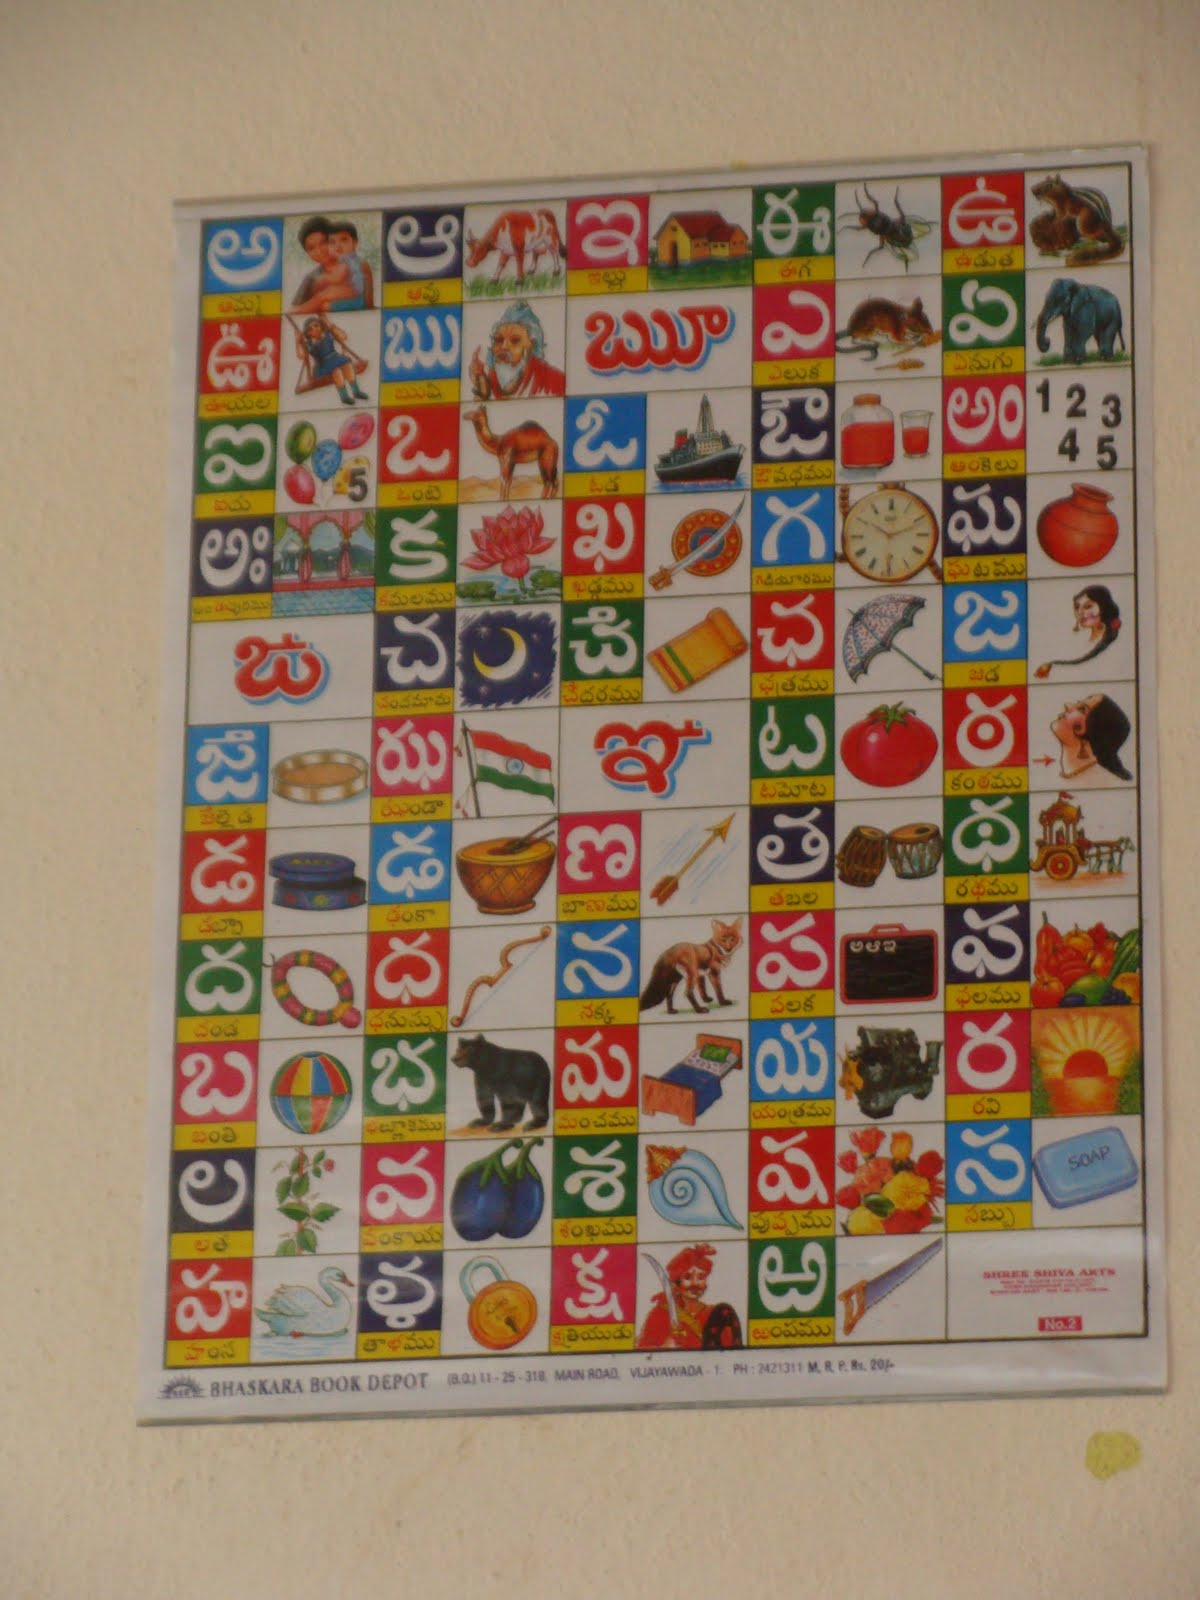 Telugu Alphabets Chart Worksheets Releaseboard Free Printable Worksheets And Activities